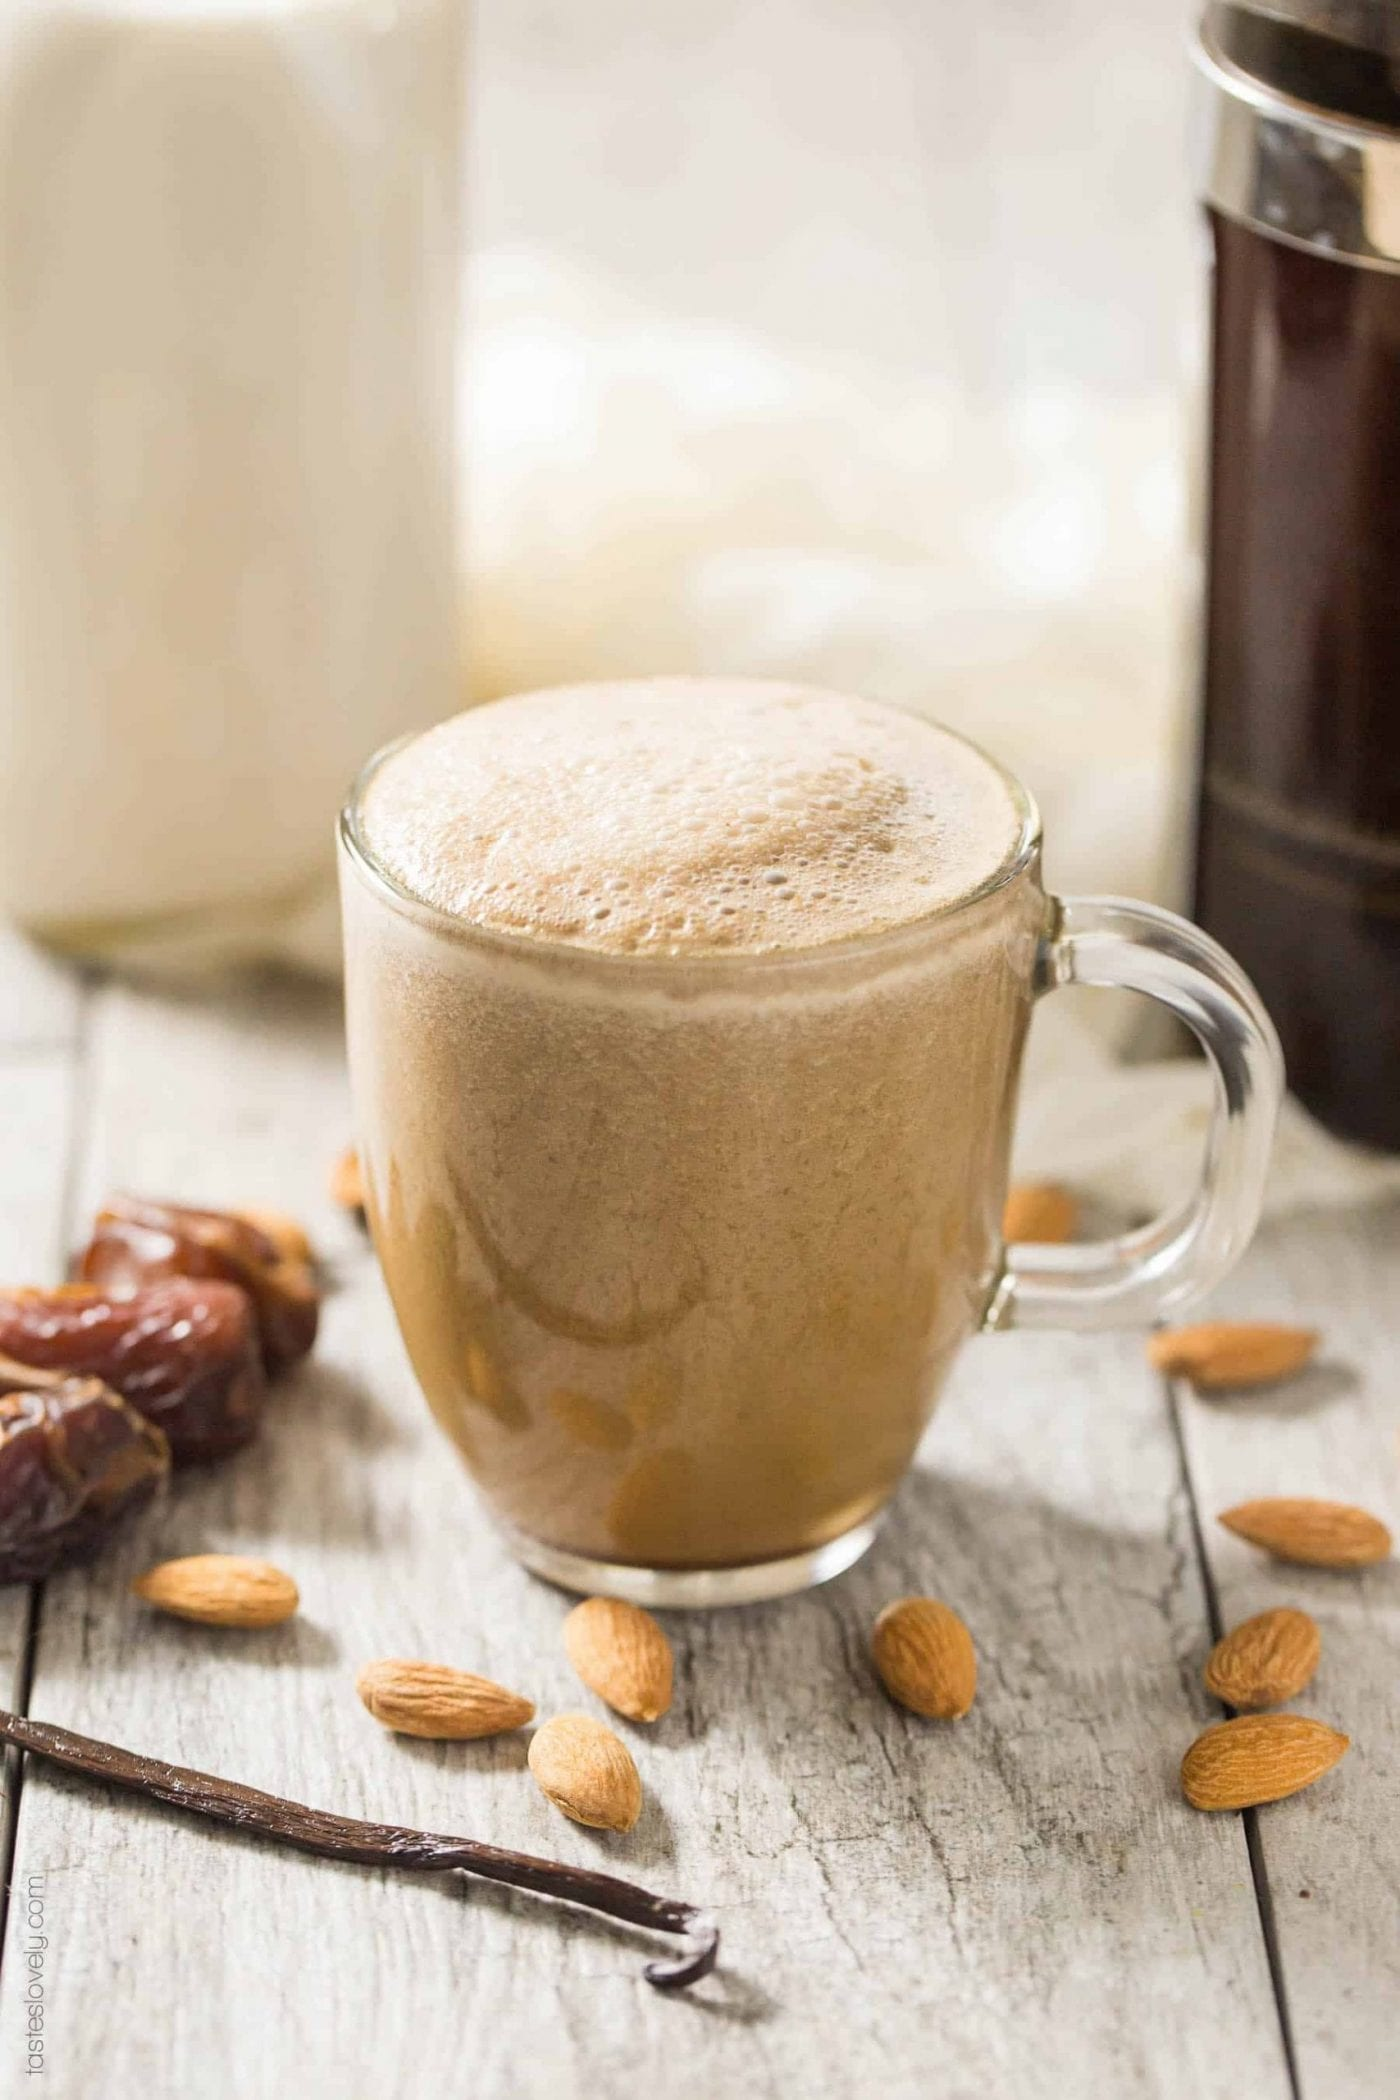 Be A Barista At Home With These 3-Step Coffee Recipes: